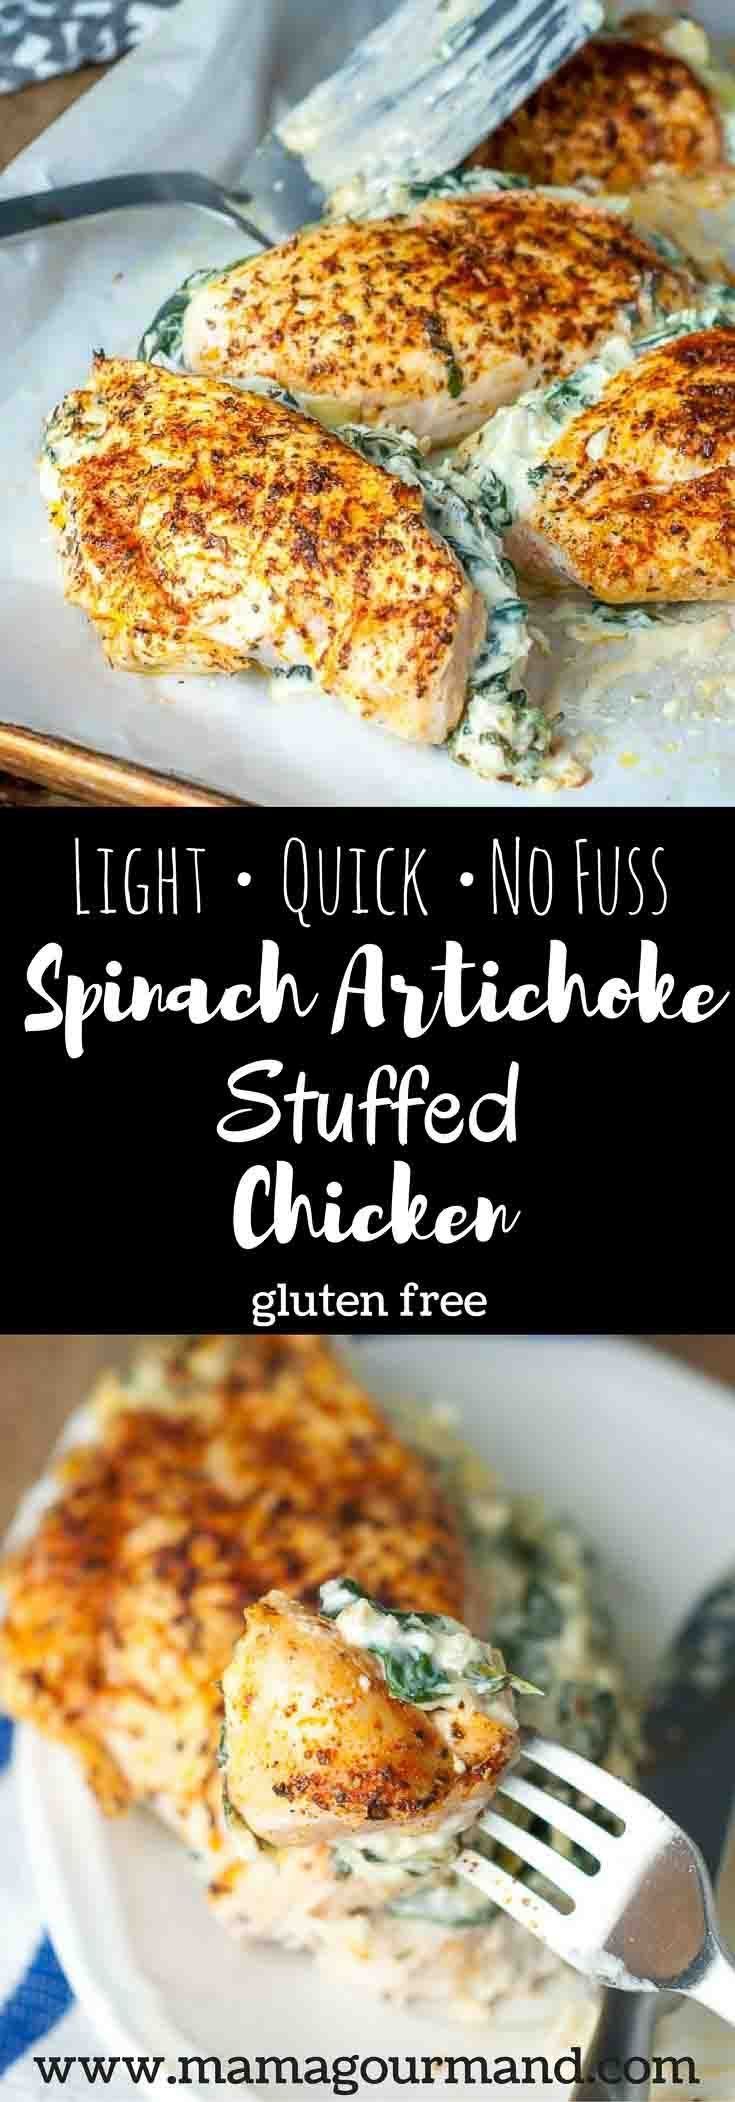 No Fuss Spinach Artichoke Stuffed Chicken combines the best version of classic flavors and rolls it into a light, quick, easy to follow recipe. http://www.mamagourmand.com via /mamagourmand/